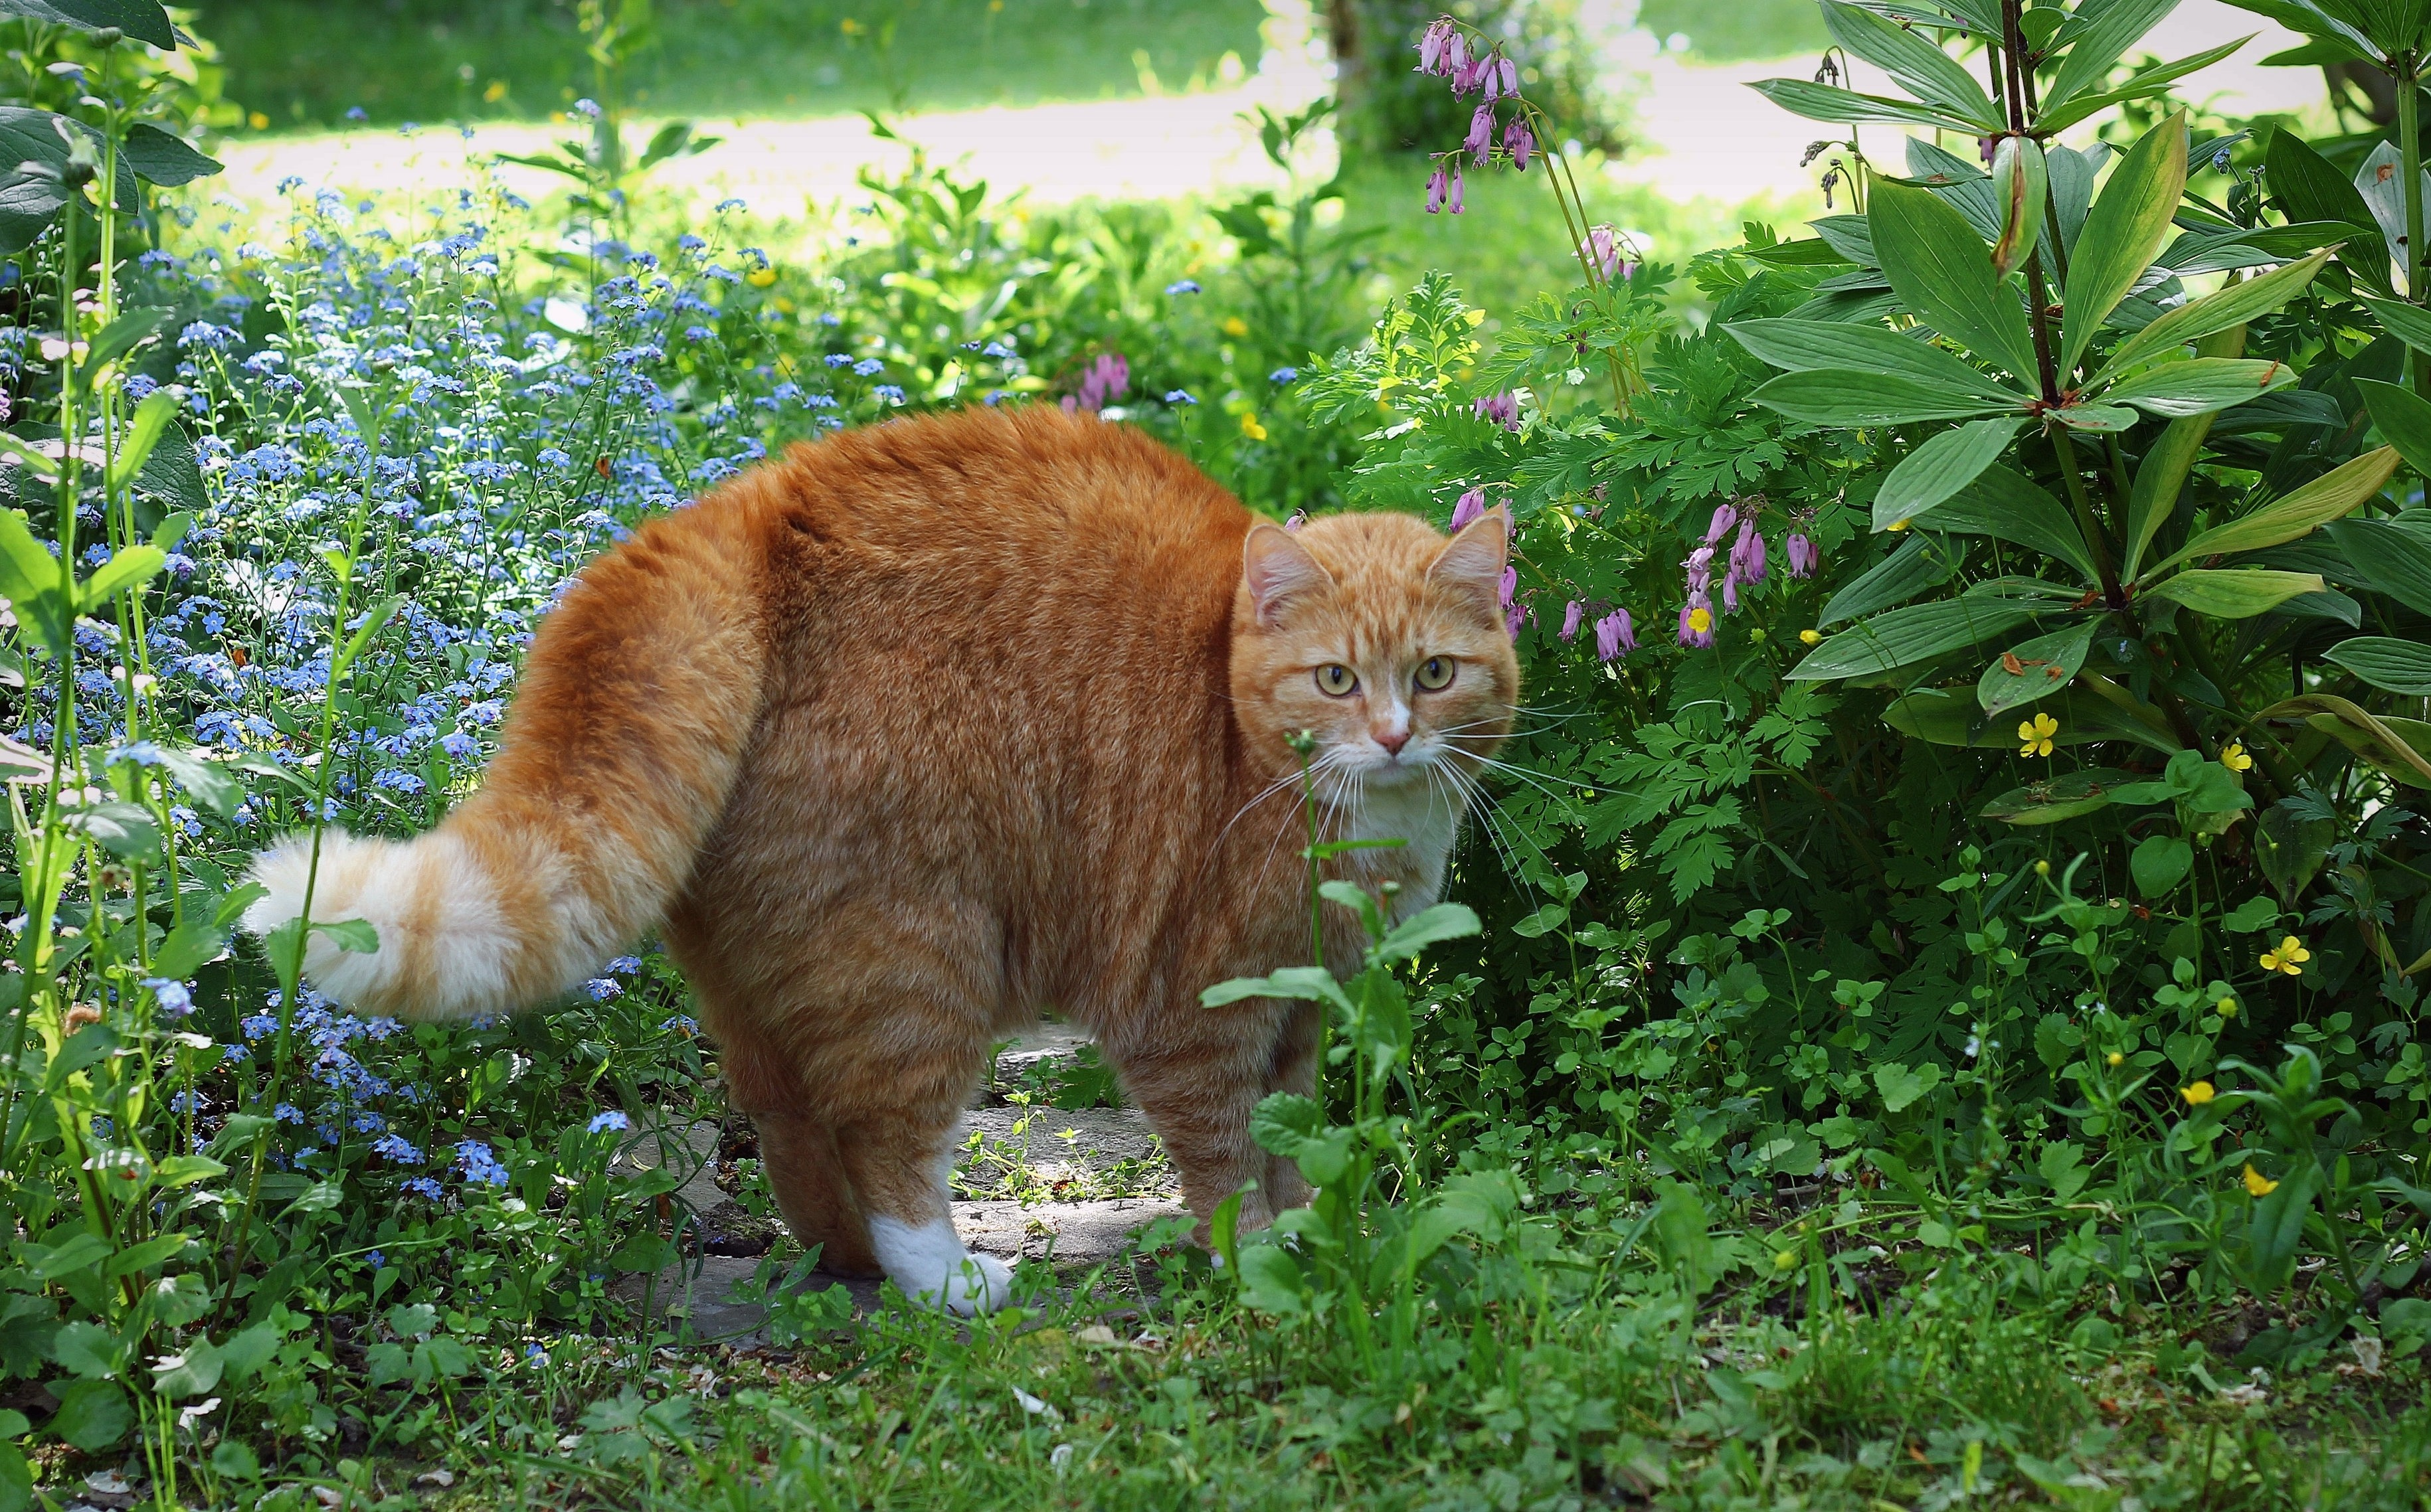 61427 download wallpaper Animals, Cat, Redhead, Striped, Grass screensavers and pictures for free